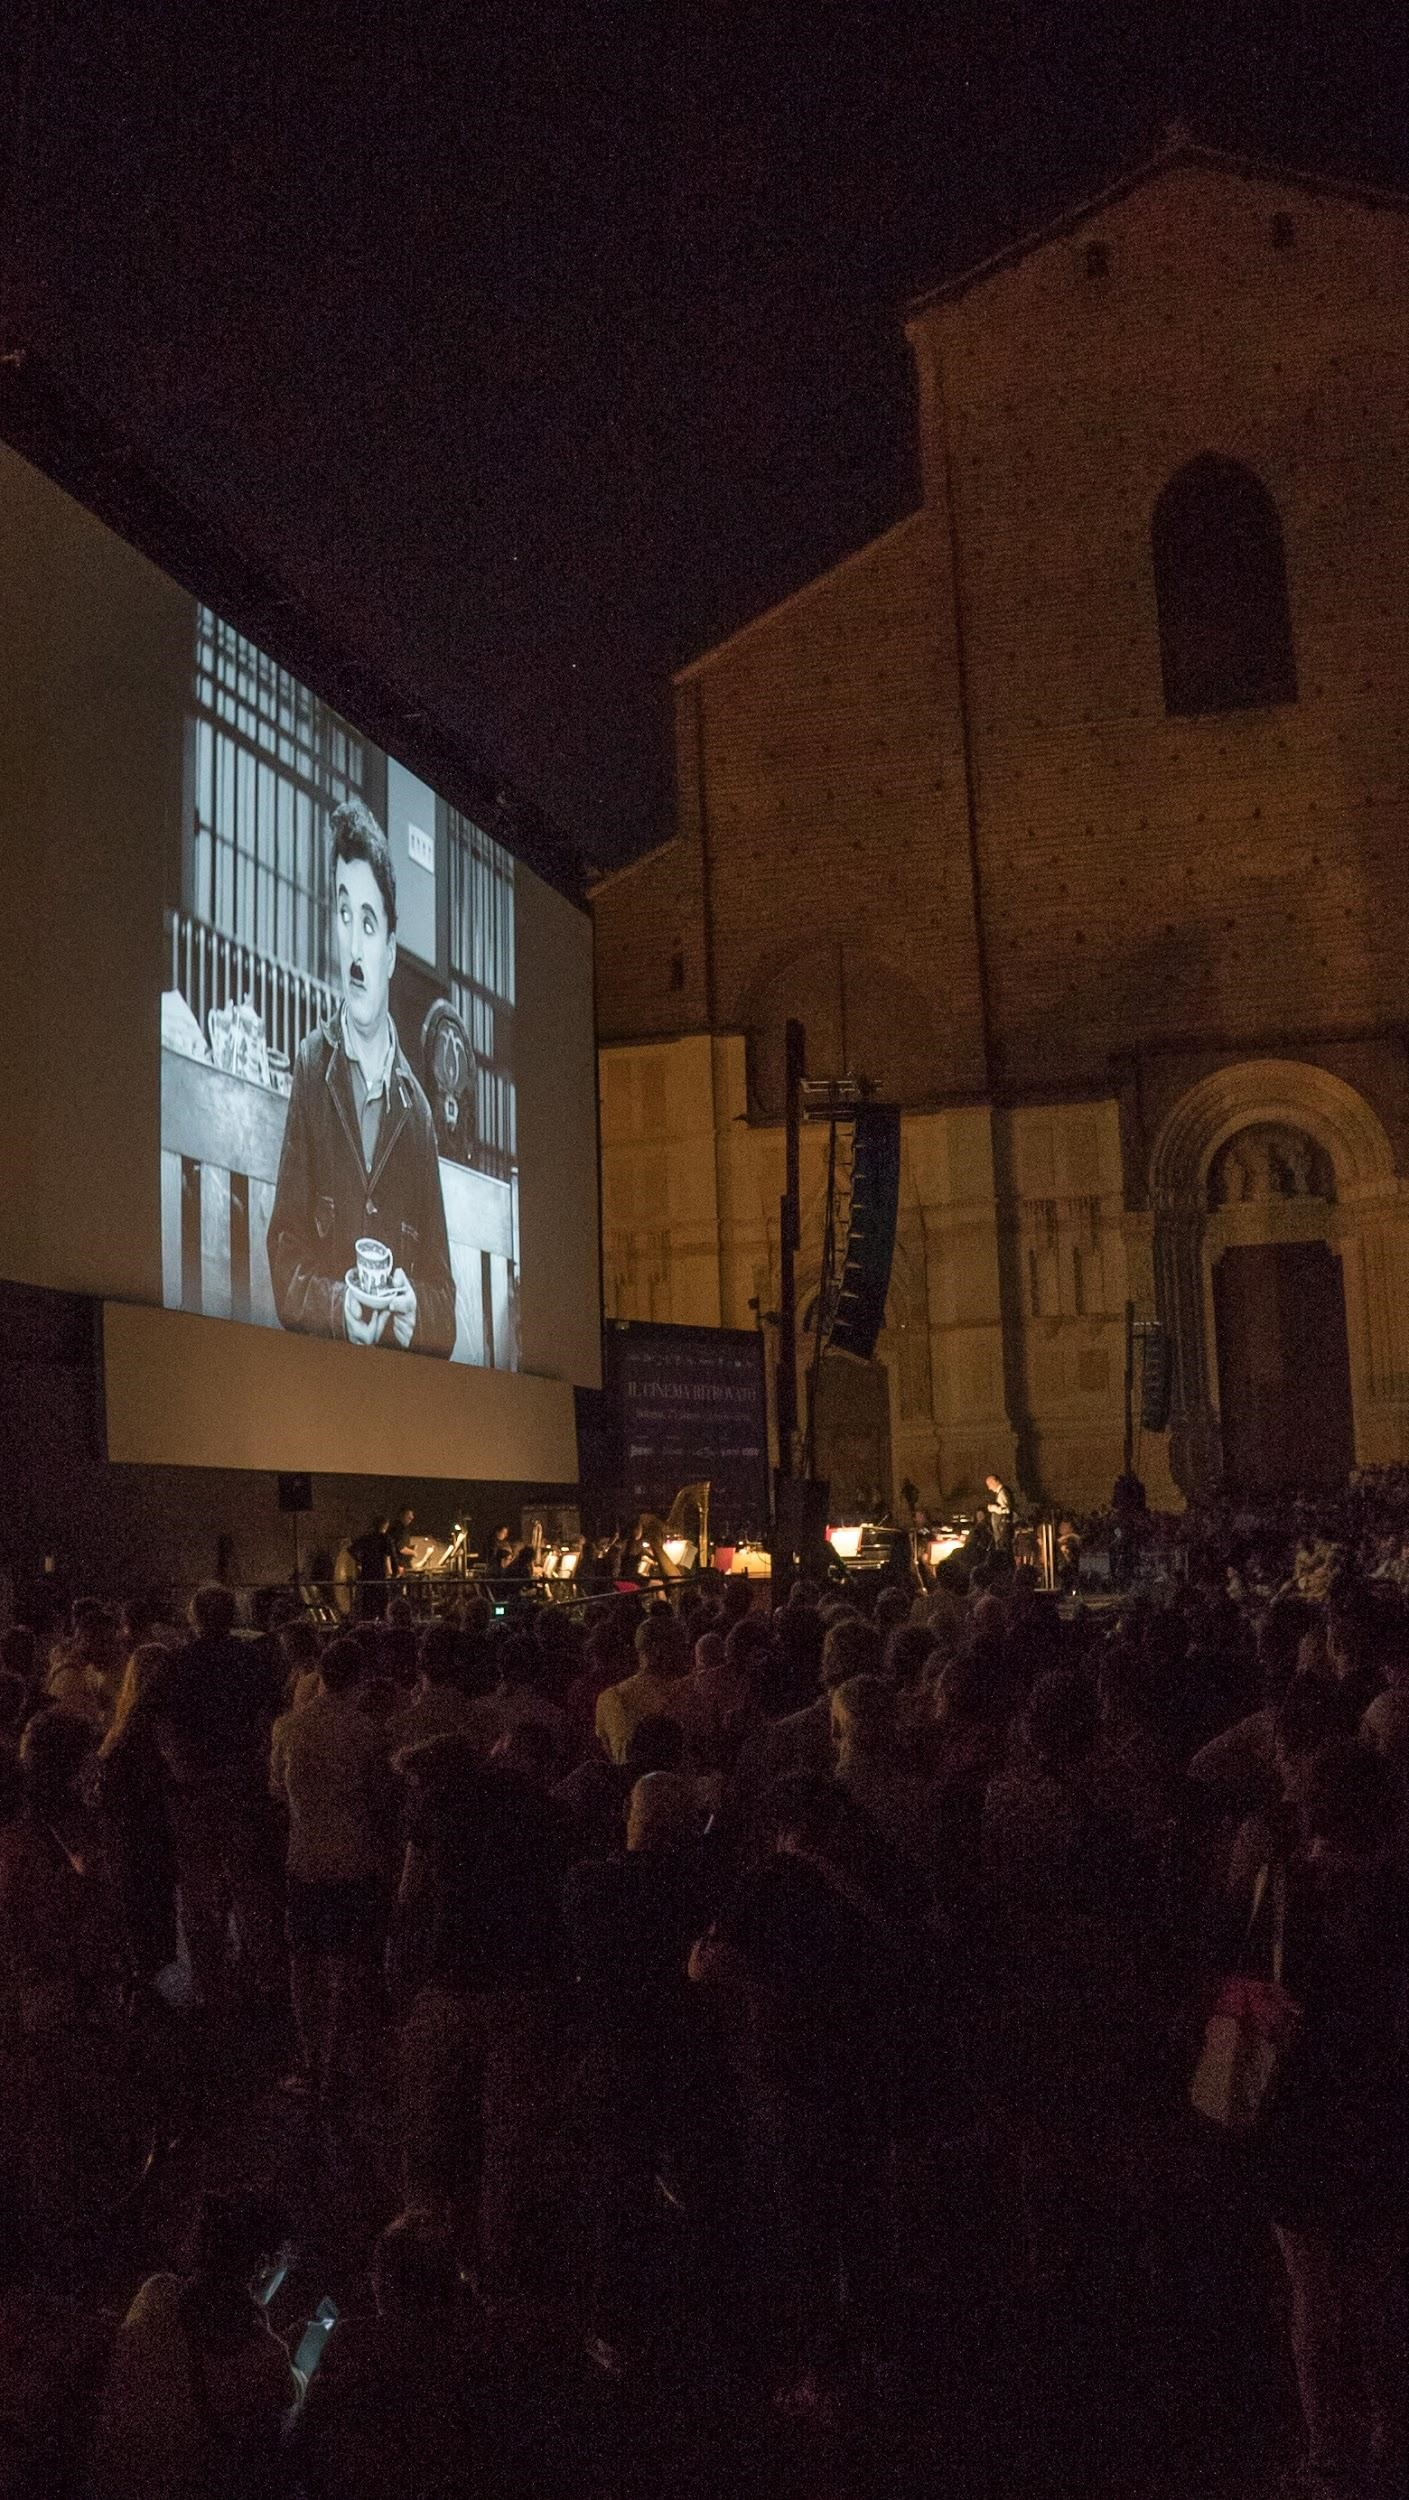 Modern Times (1936) at Piazza Maggiore. All seats were taken and people stood around just to catch a glimpse of Little Tramp. Live music accompaniment was directed by Timothy Brock and performed by the Teatro Comunale di Bologna Orchestra.